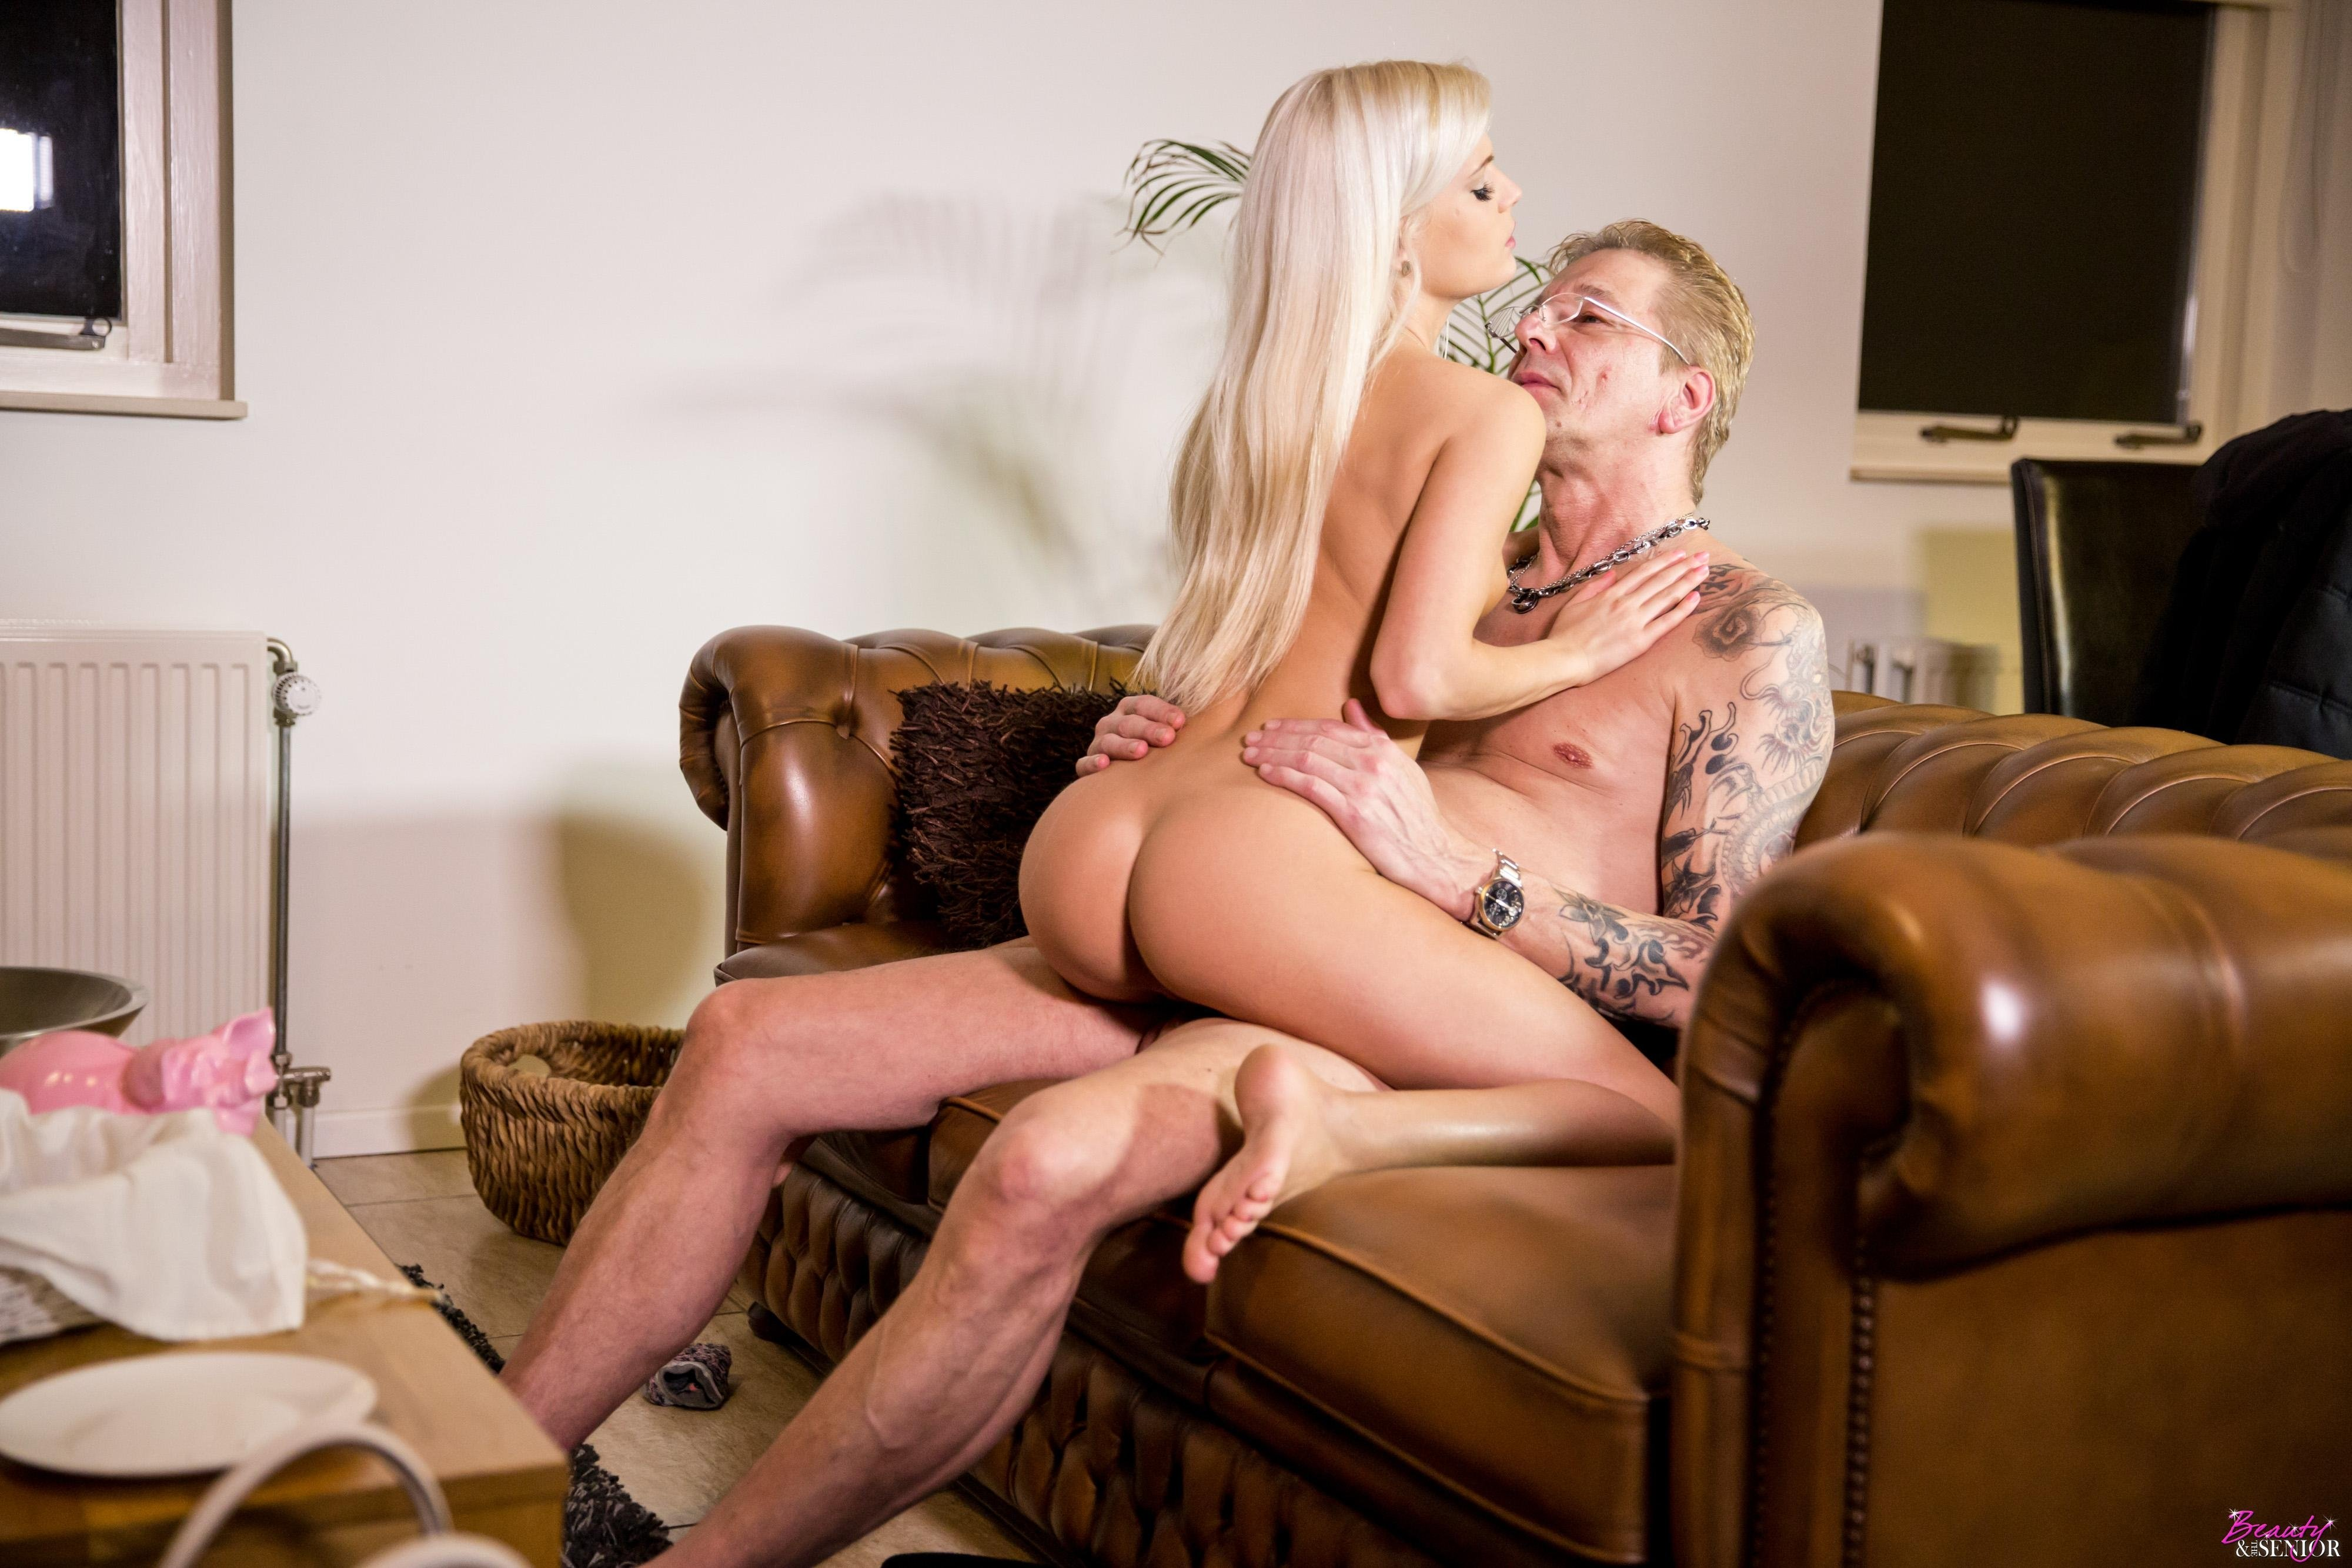 Baby Doll Handcuffed Swede Gets it Doggie Style - Chattercams.net authoritative answer